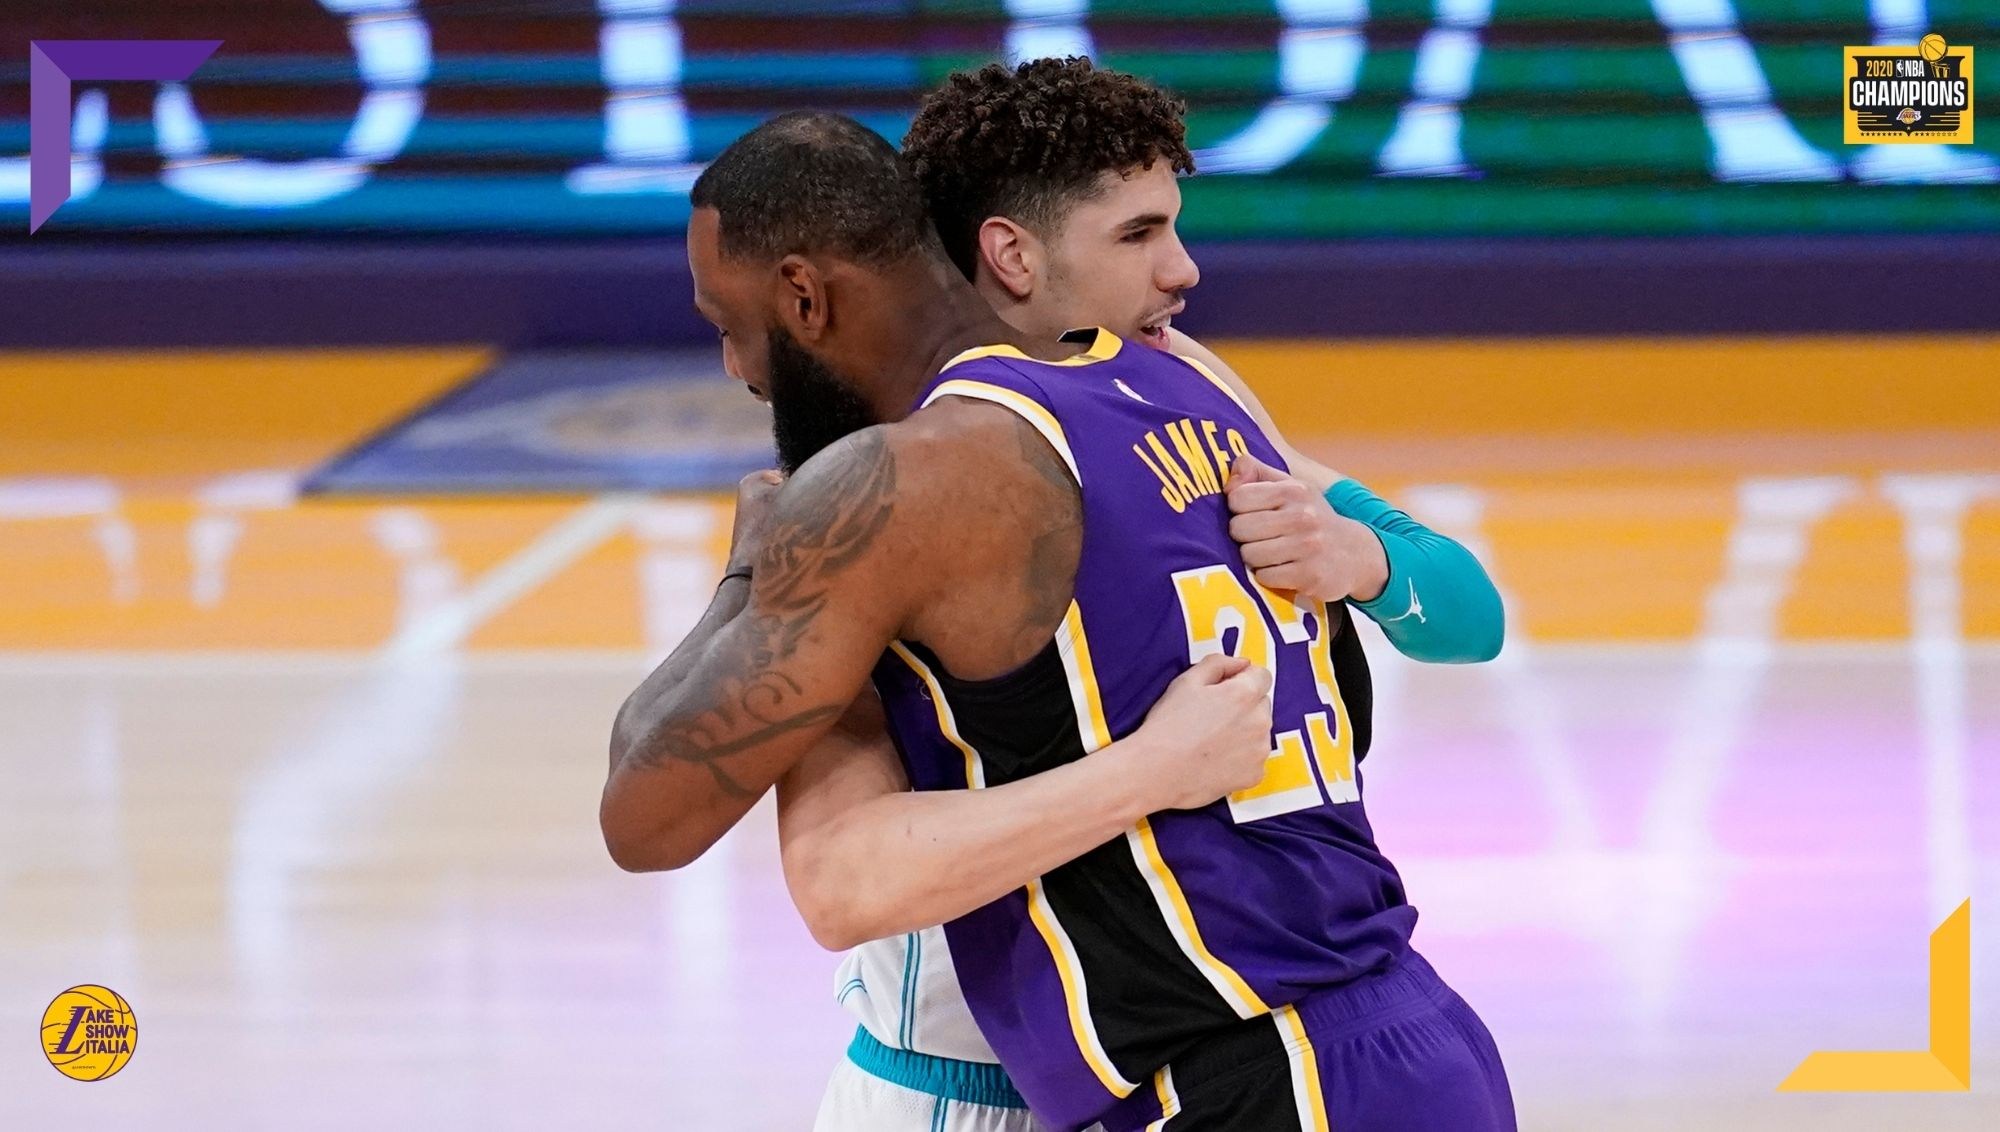 LeBron James and LaMelo Ball, Los Angeles Lakers vs Charlotte Hornets